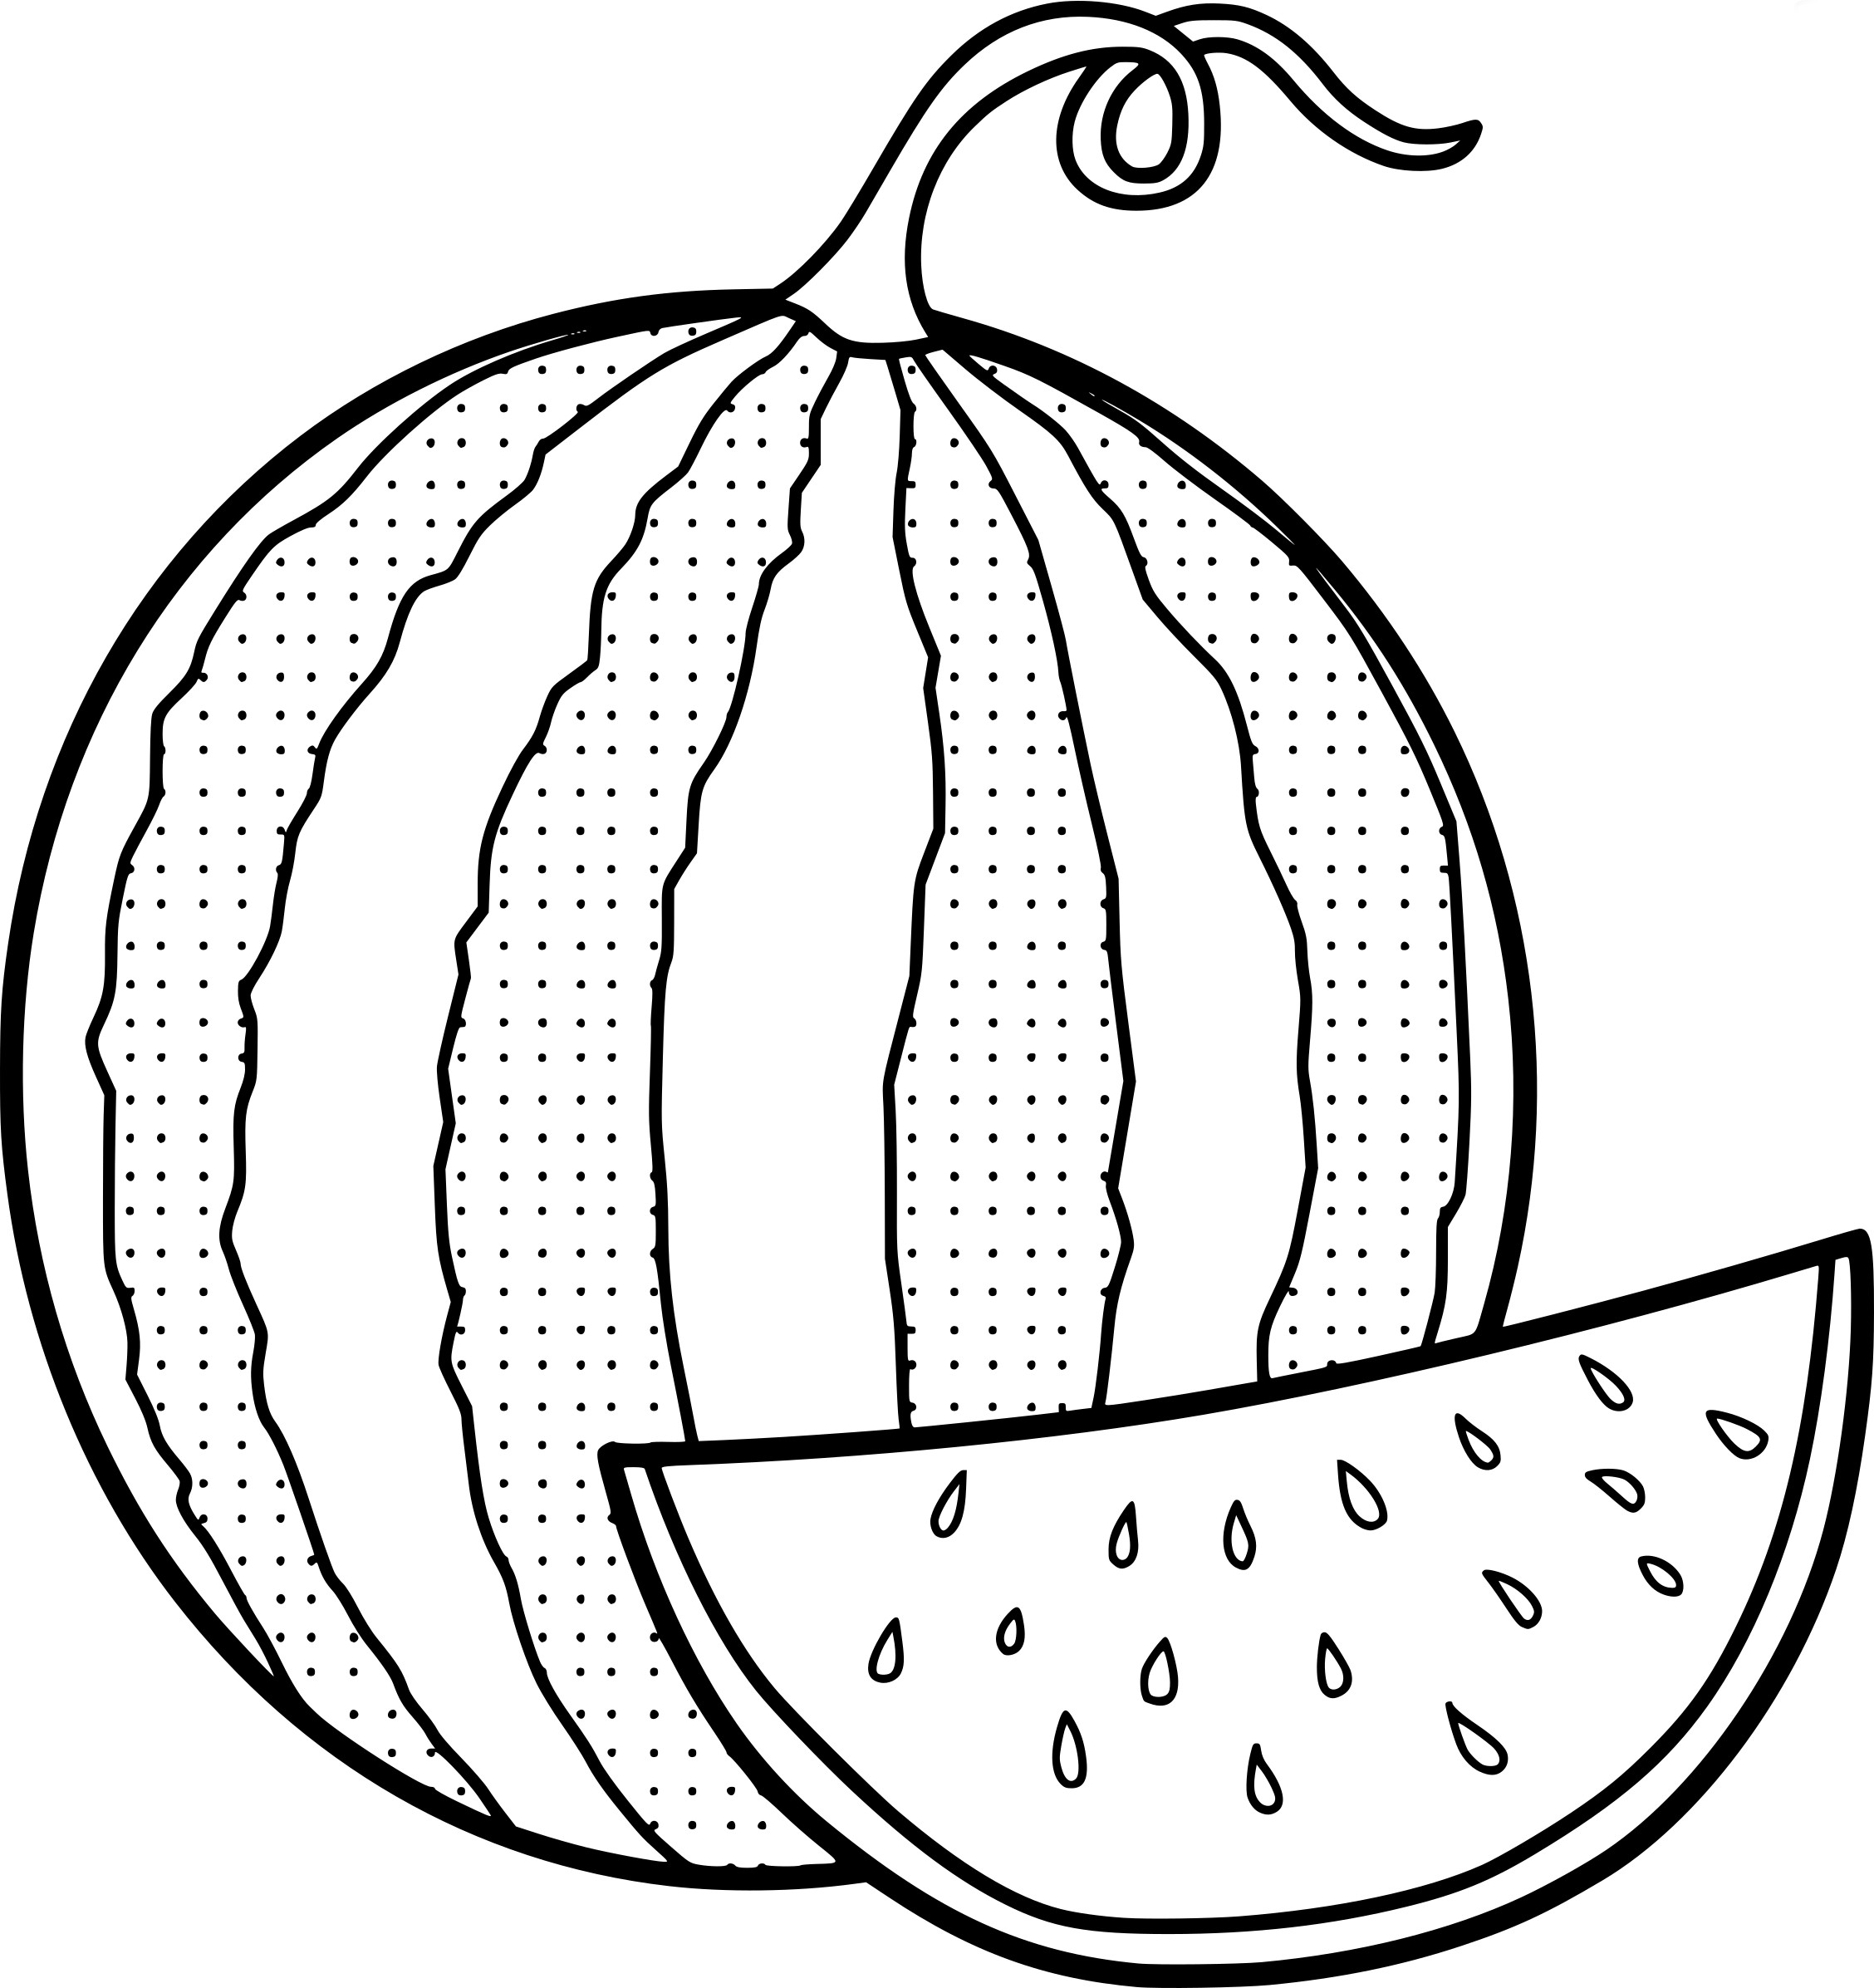 Watermelon Coloring Pages Best